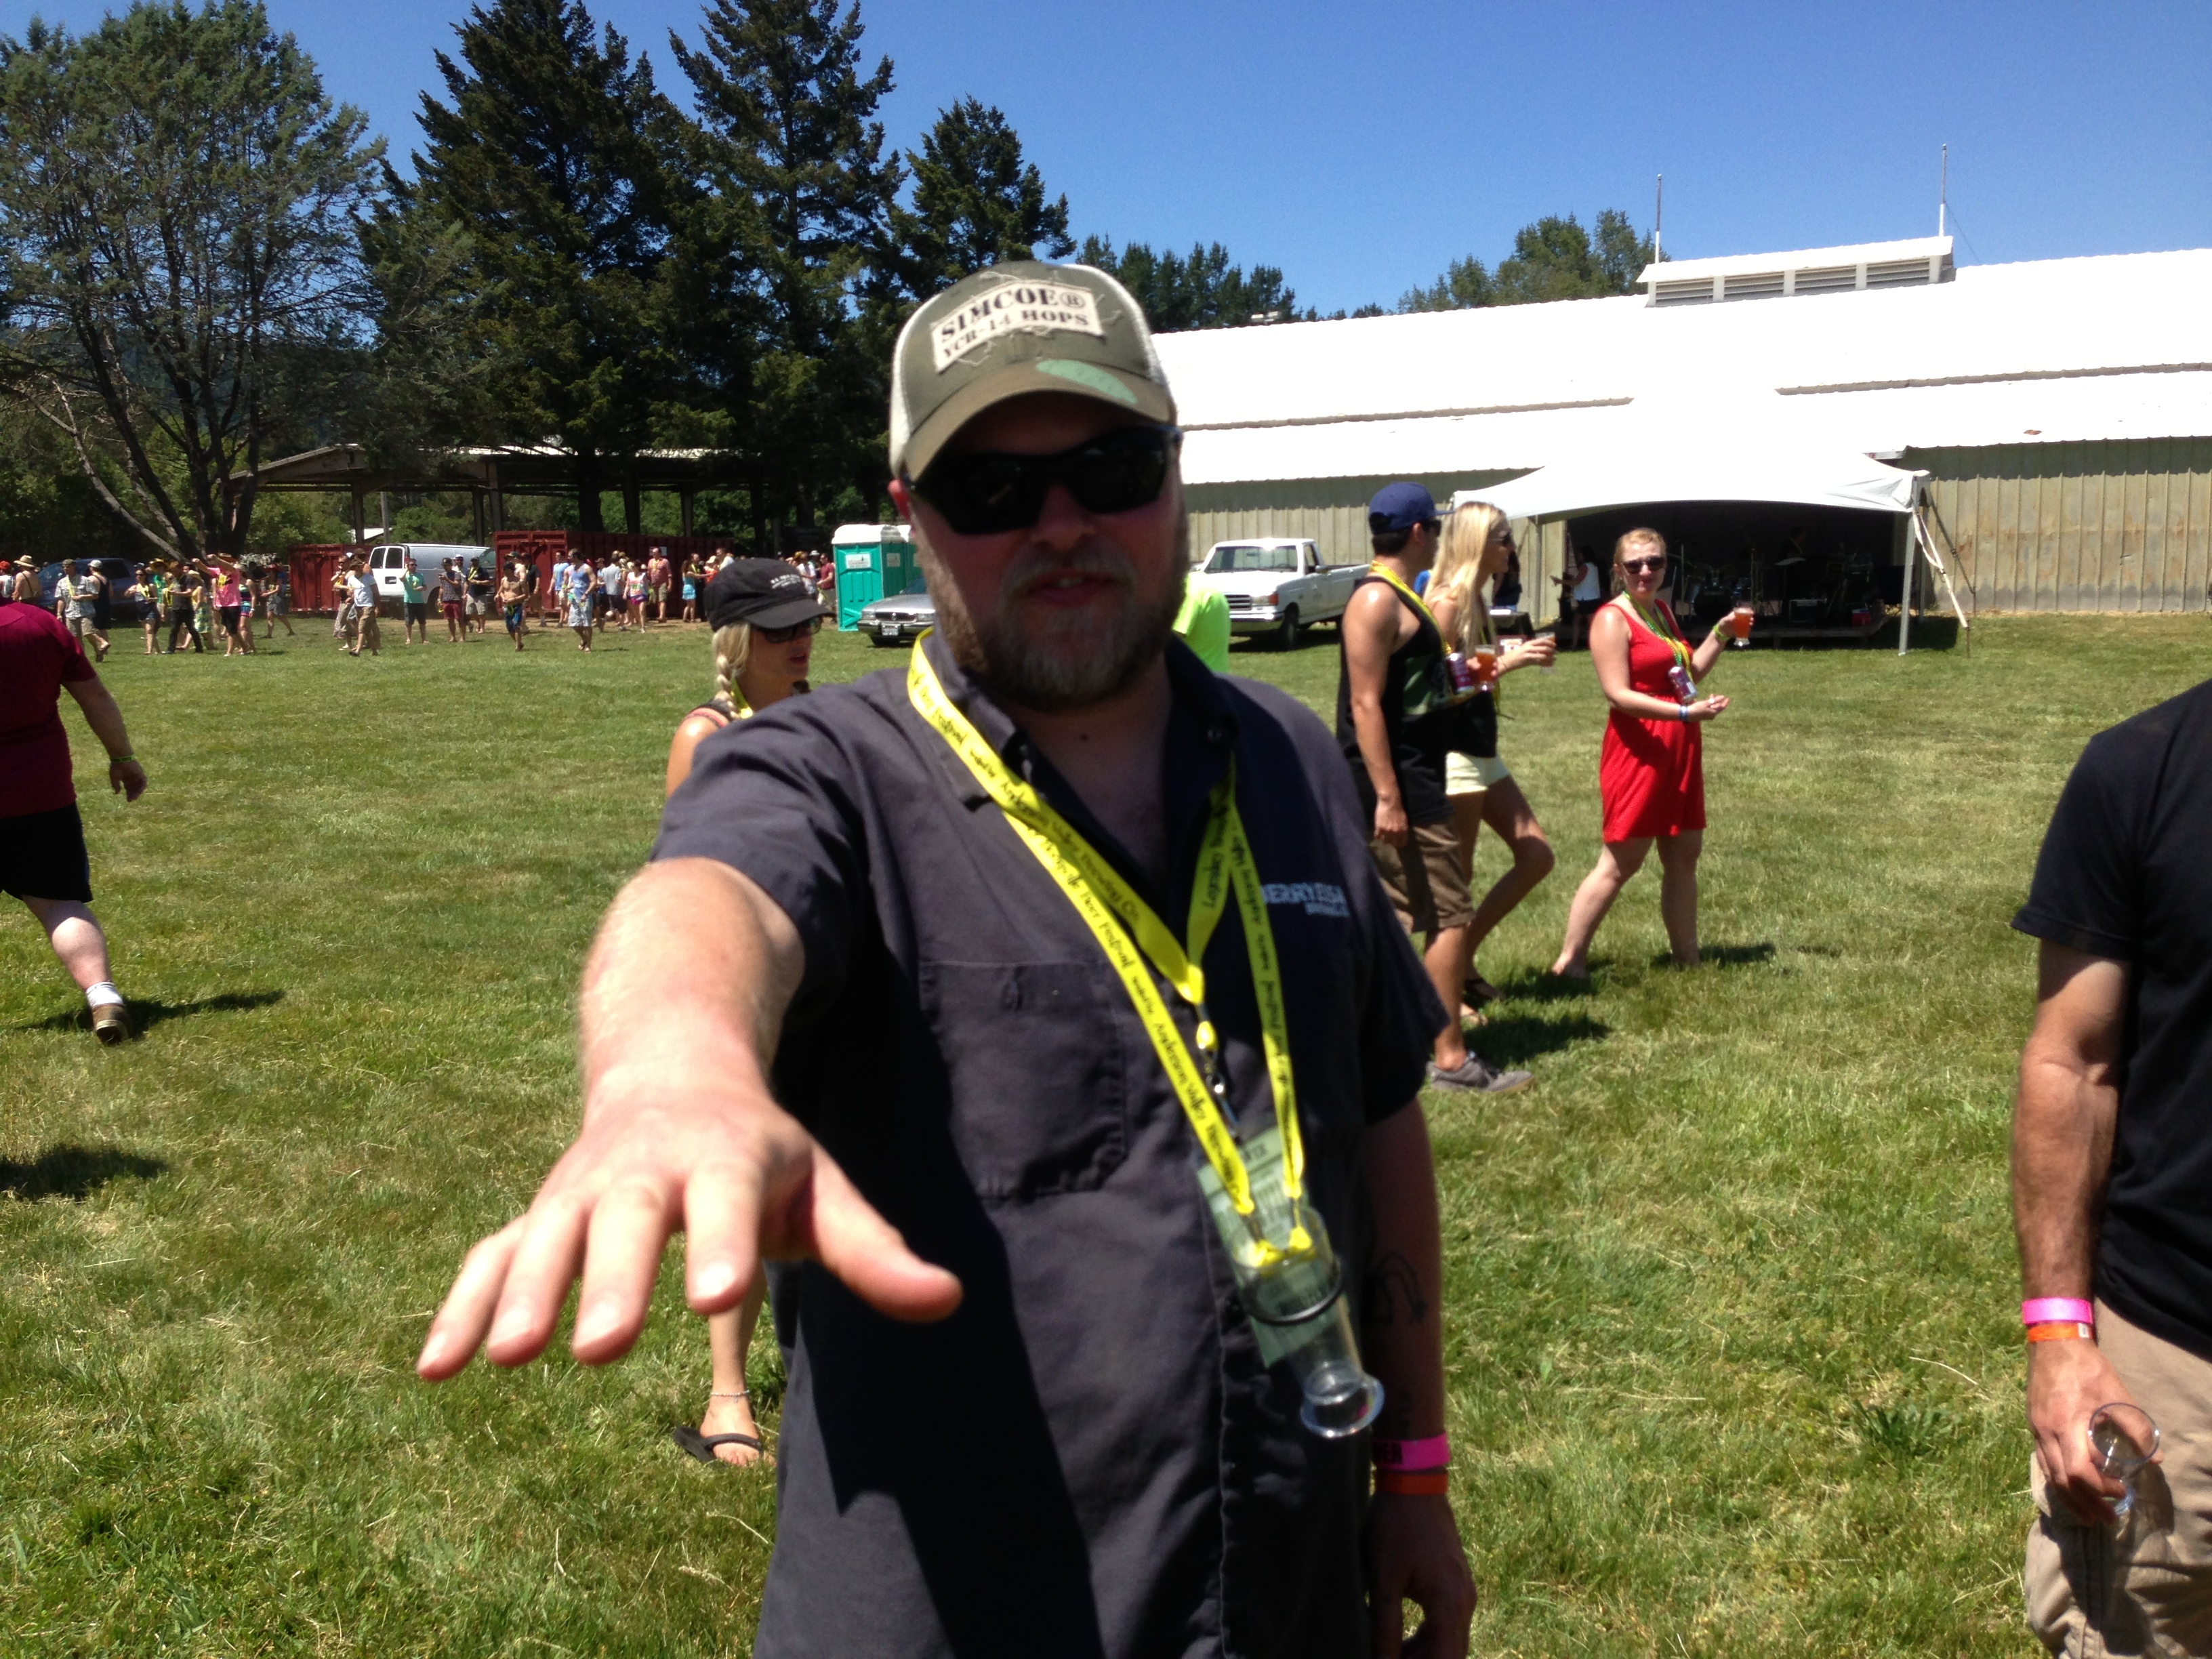 Berryessa founder and brewer Chris Miller feels the good vibes at Boonville Beer Fest 2013